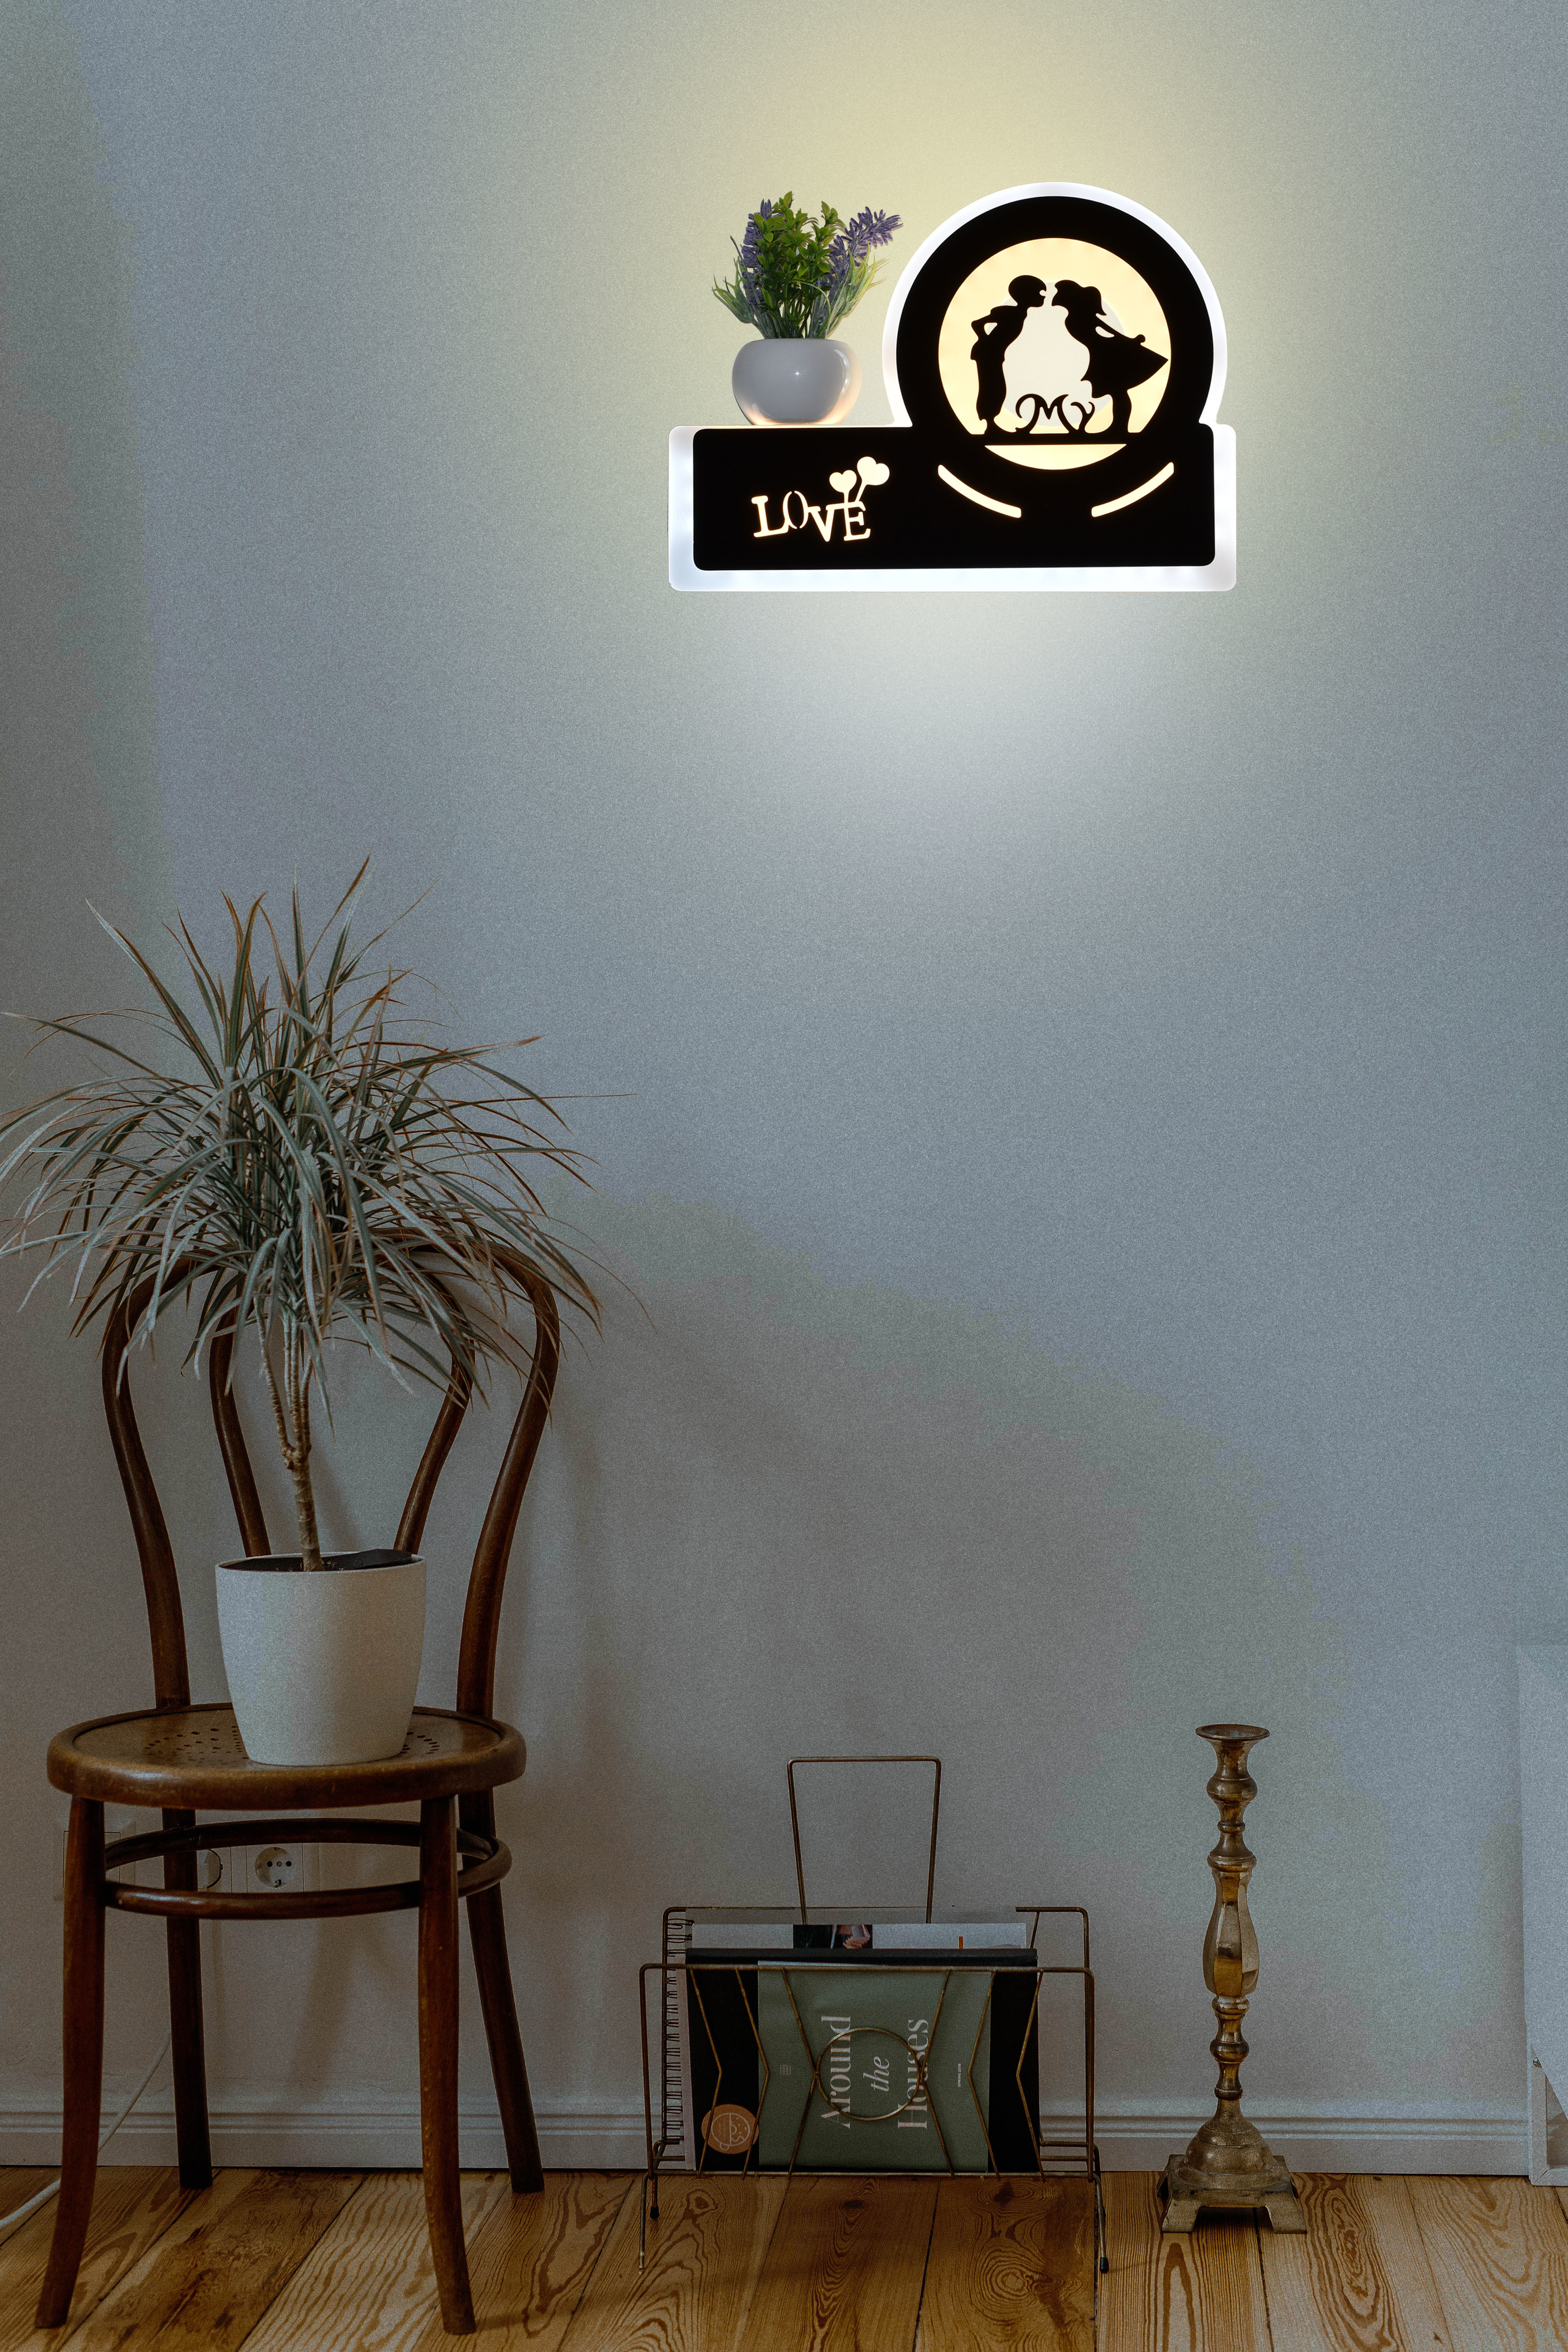 23w My Love Decor Wall Led Lamp (Warm White + Cold White)